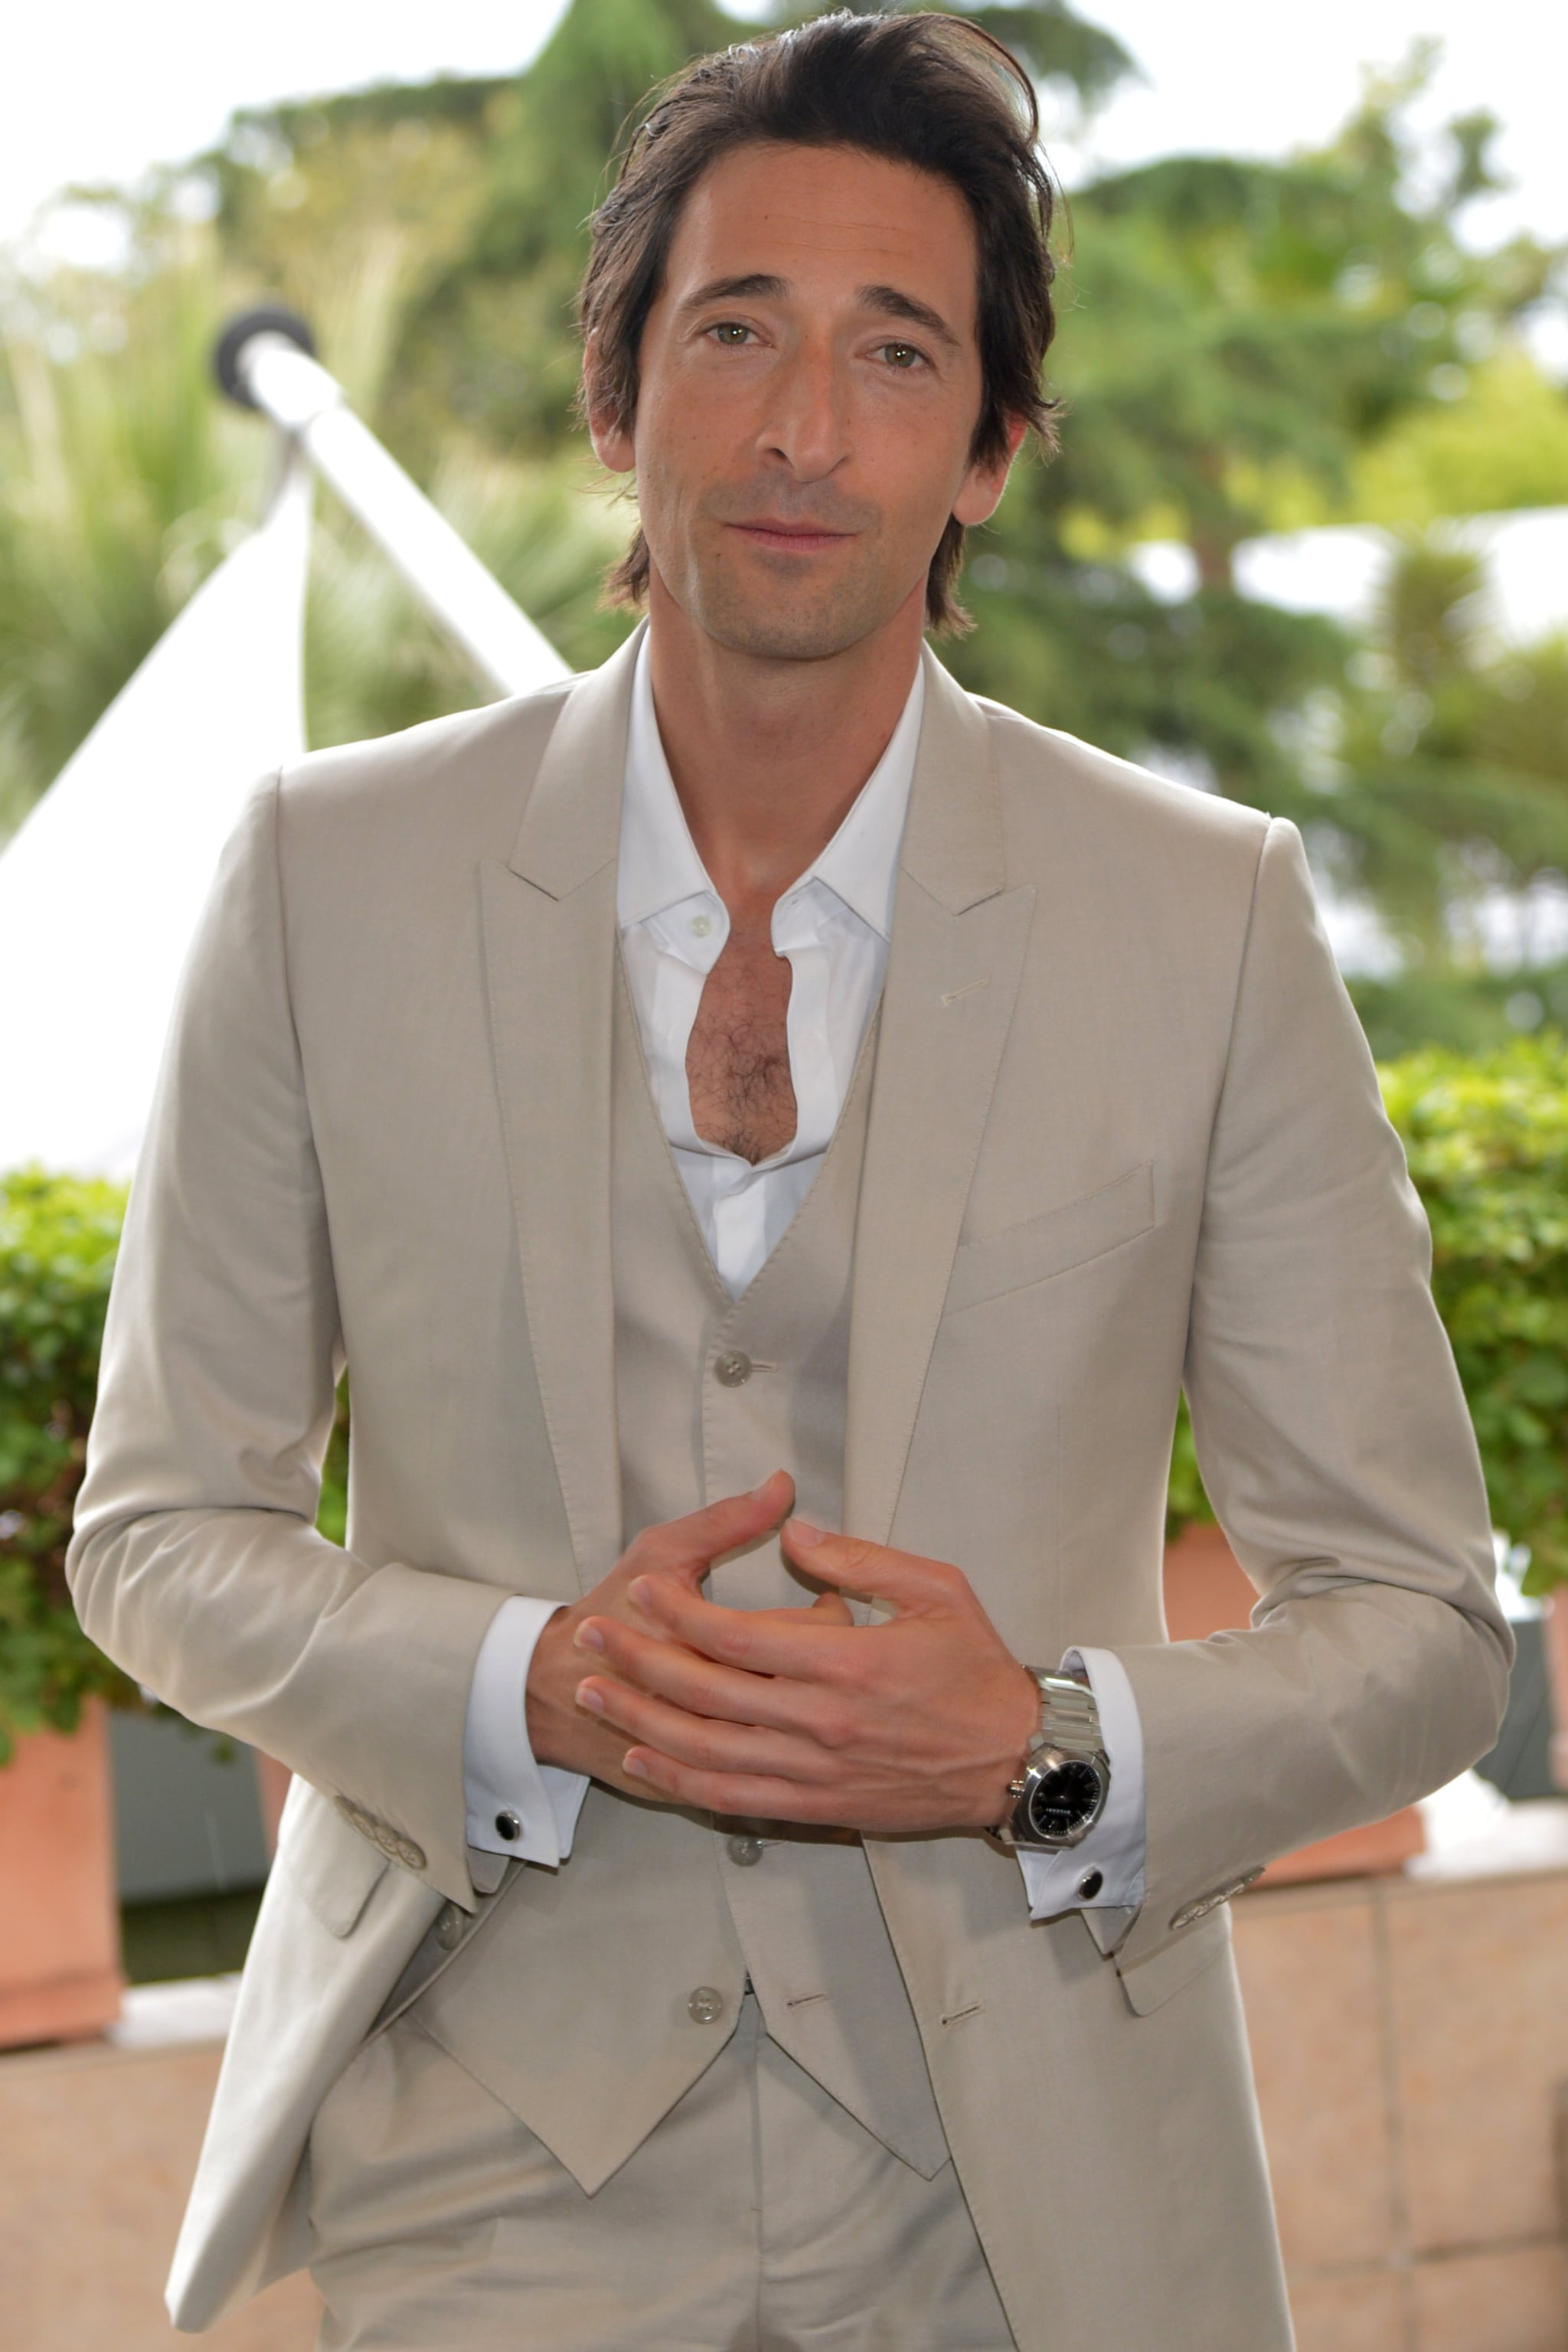 Adrien Brody will star in Emperor, as 16th century Emperor Charles V.